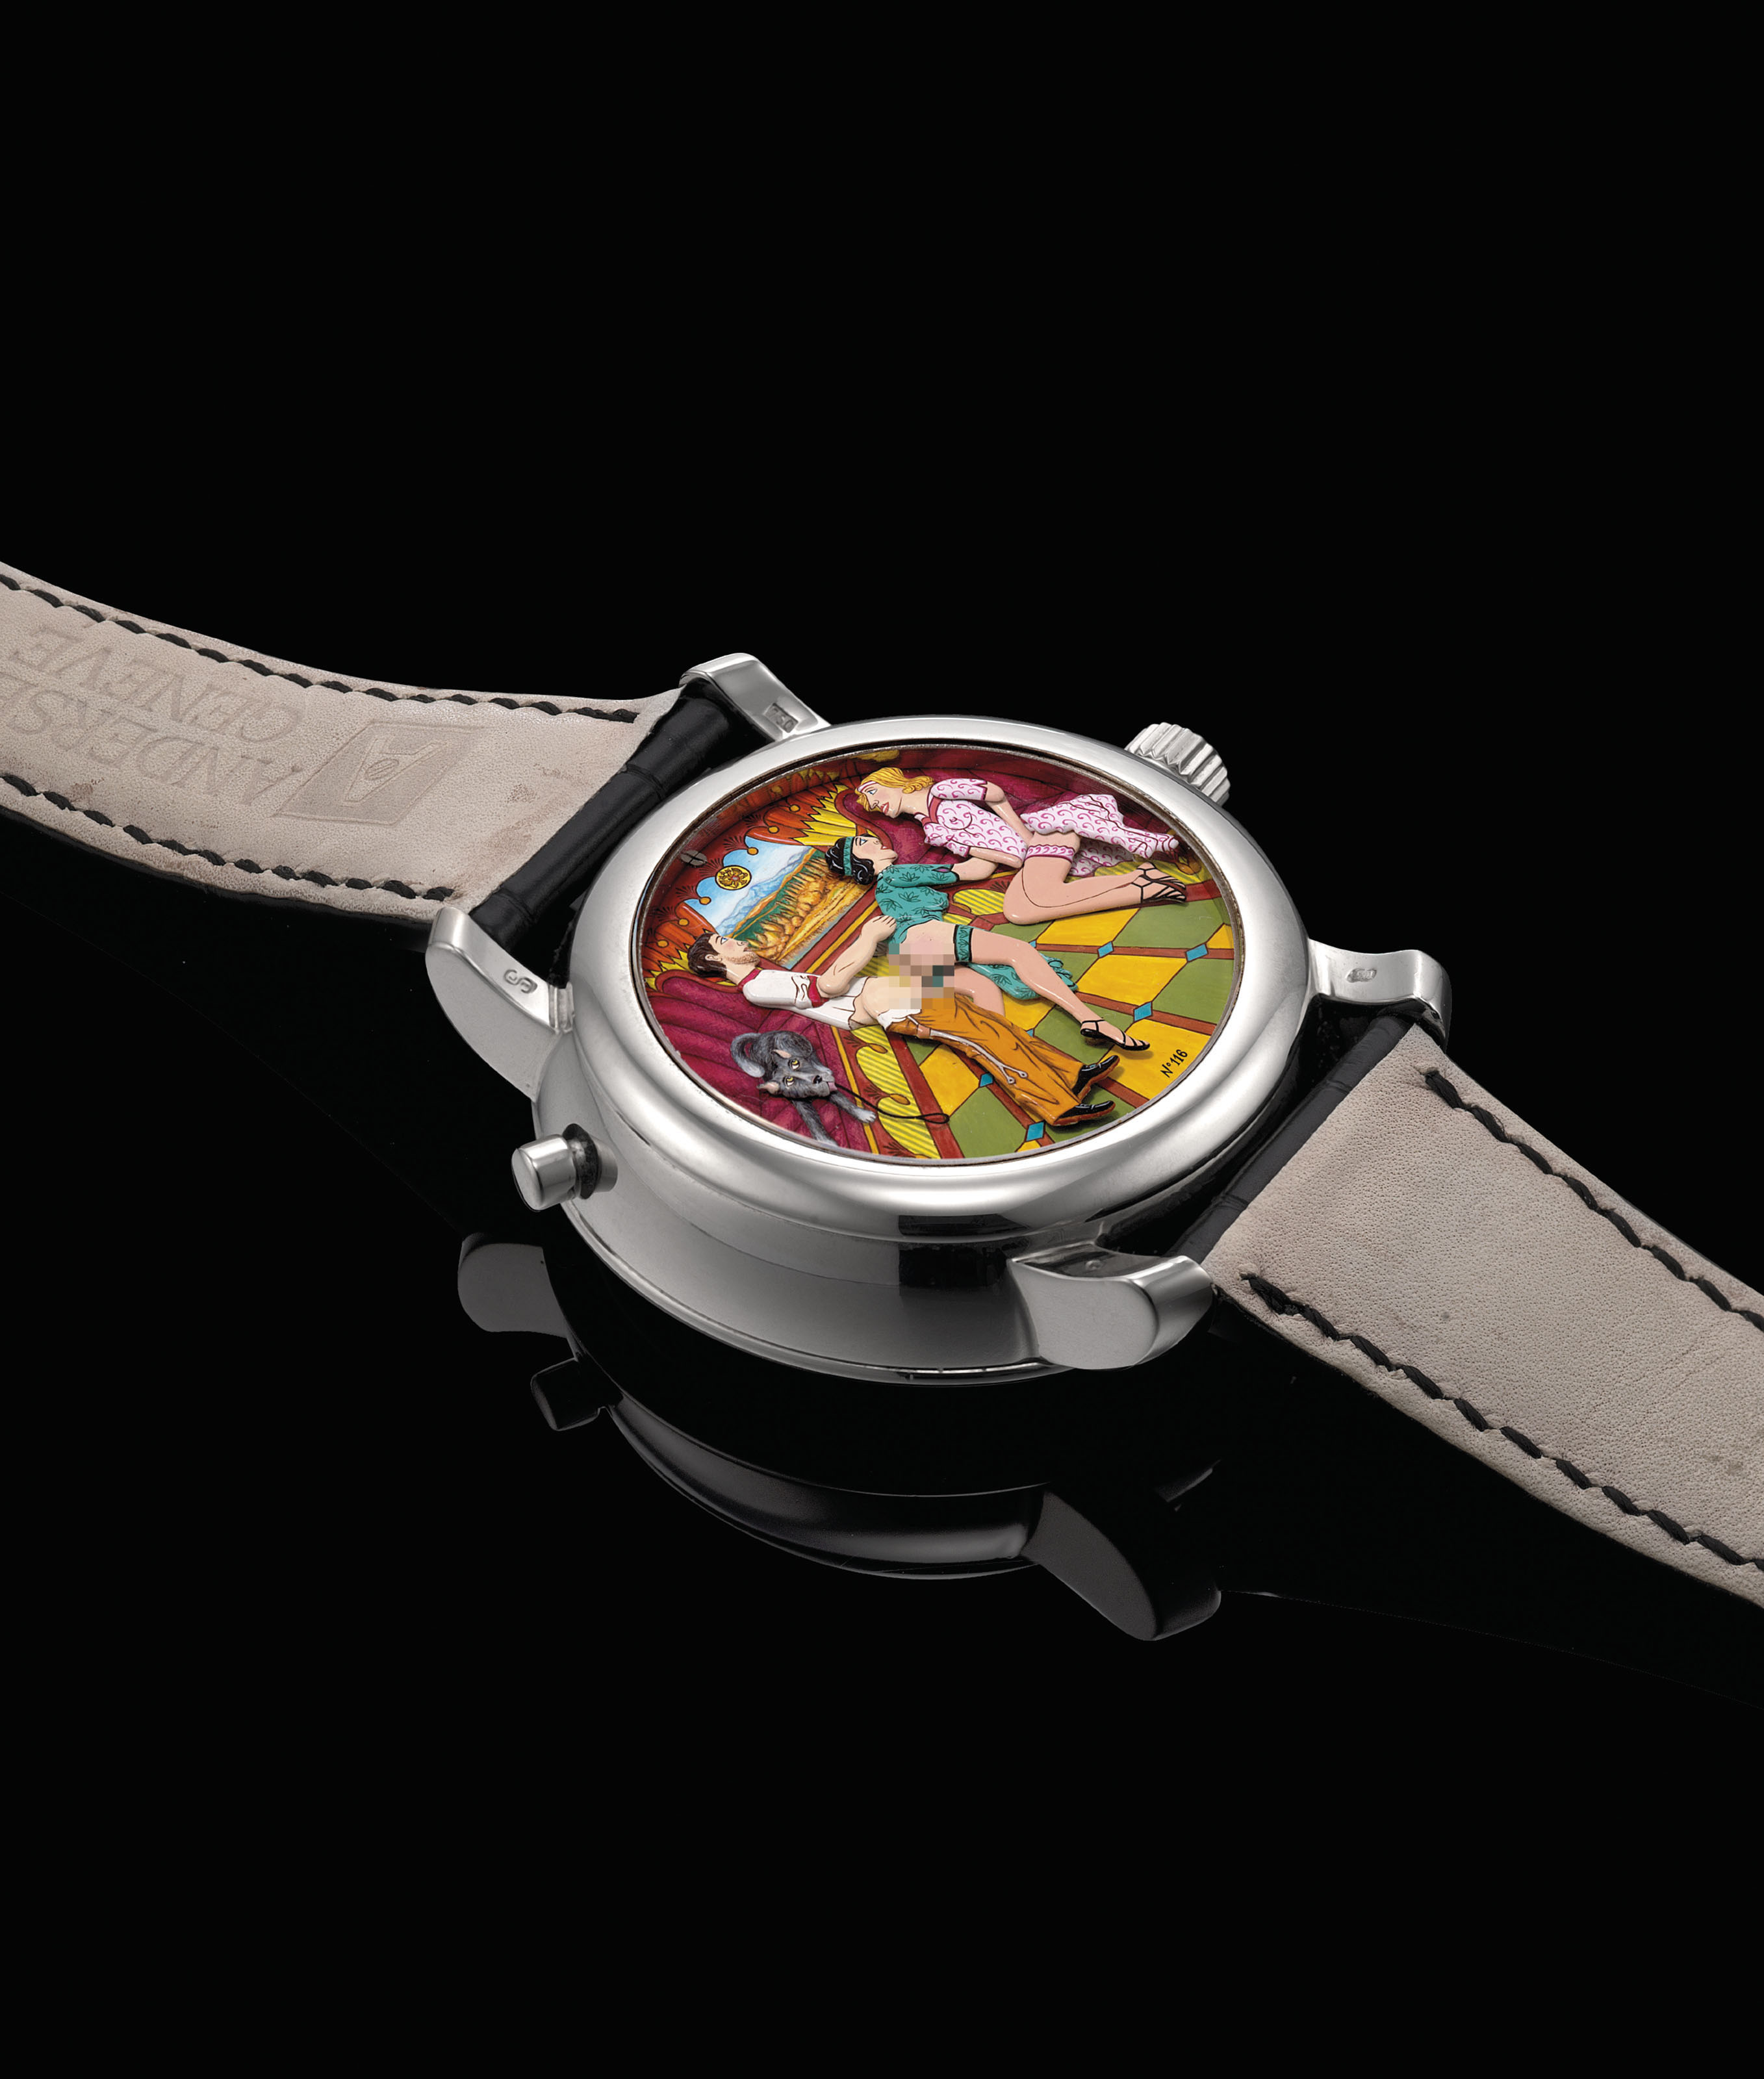 ANDERSEN. A FINE AND RARE 18K